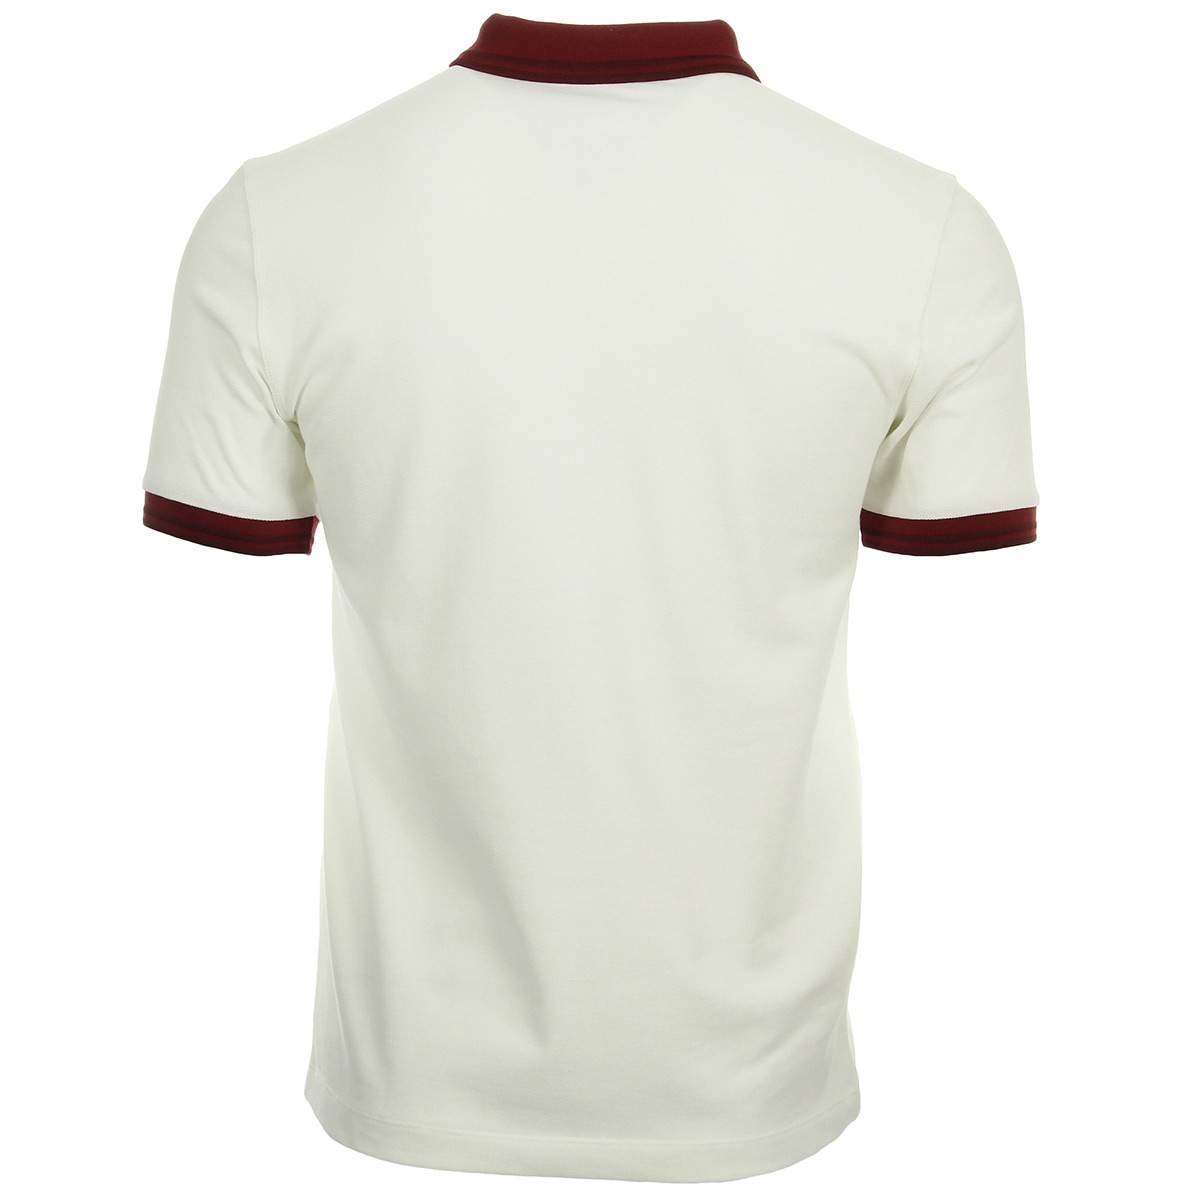 Fred Perry Tipped Placket Pique Shirt M3588129, Polos homme